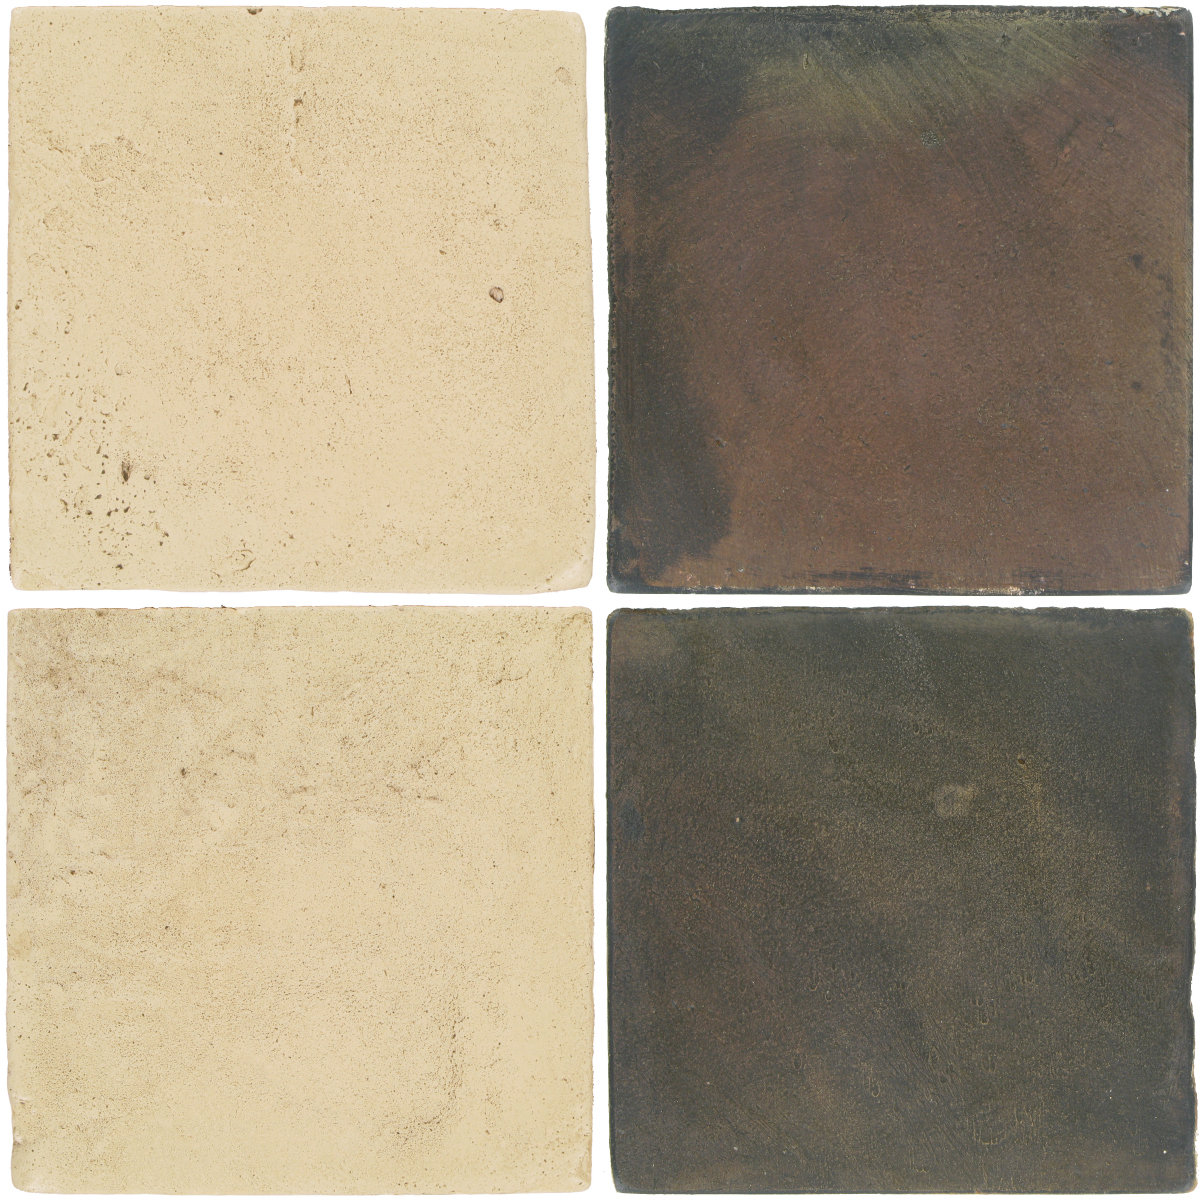 Pedralbes Antique Terracotta  2 Color Combinations  VTG-PGPW Pergamino White + OHS-PSTG Terra Grey